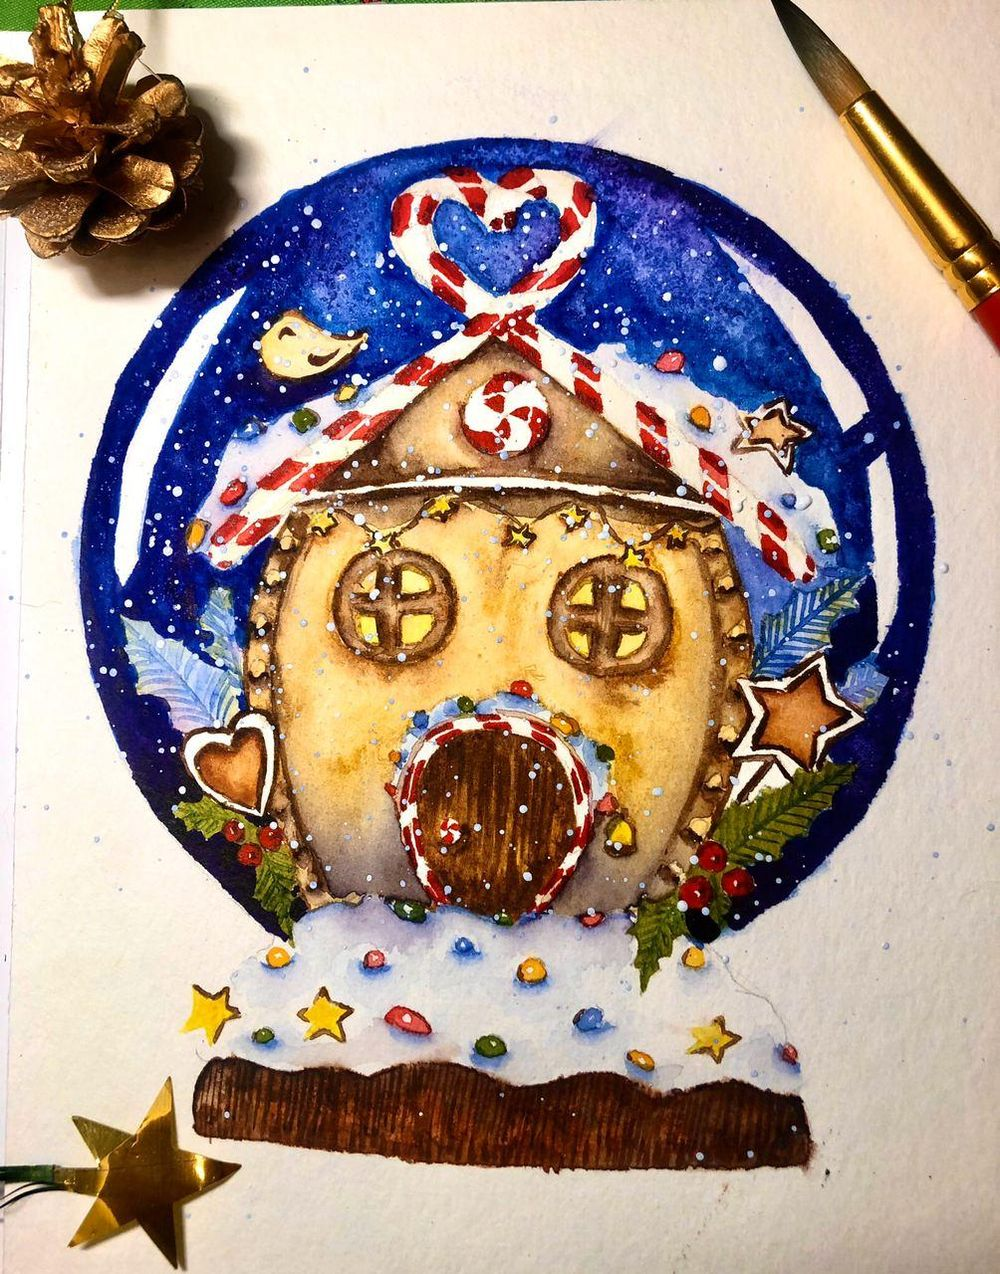 Gingerbread house in a snow globe - image 1 - student project